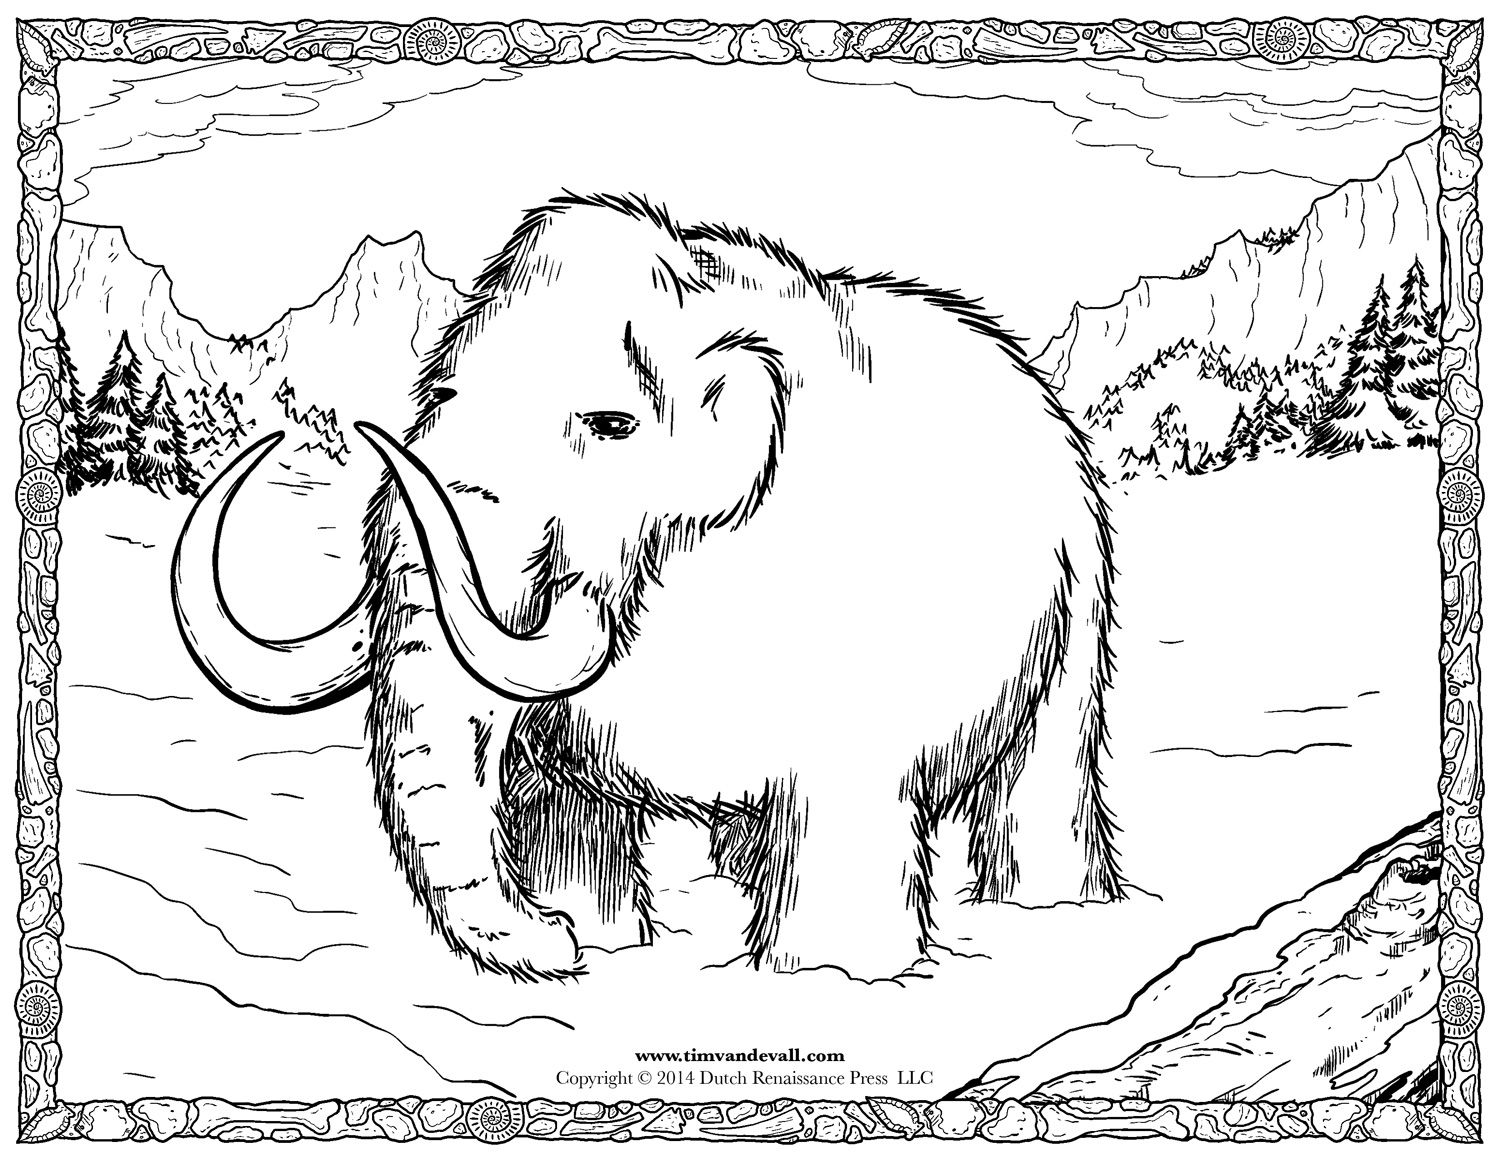 Woolly Mammoth Facts For Kids Social Studies Printables Shark Coloring Pages Coloring Pages Stone Age Activities